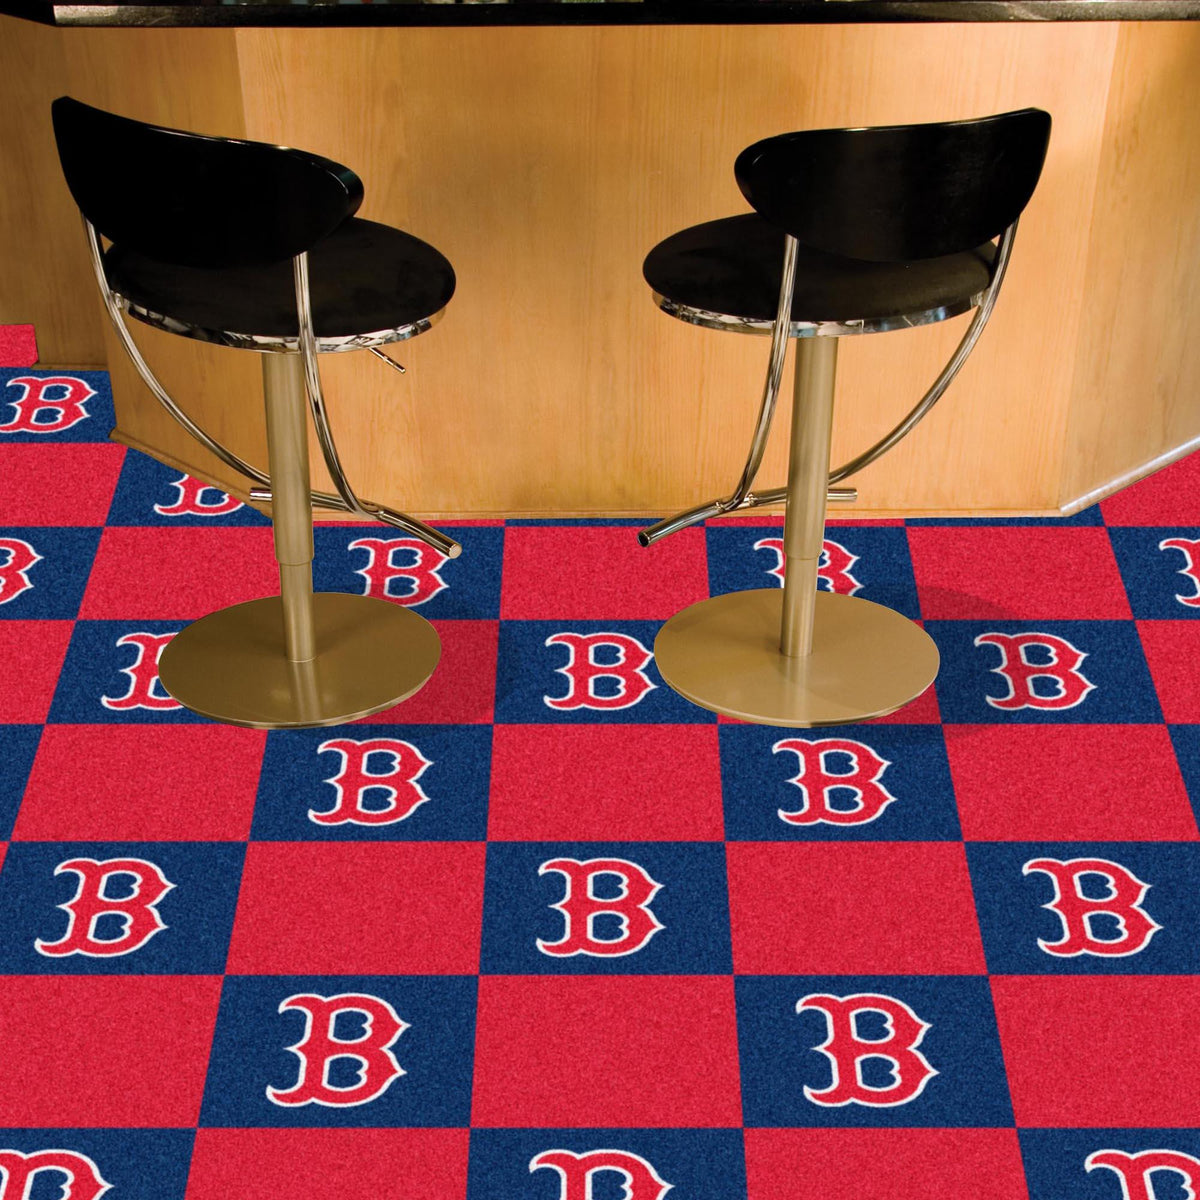 MLB - Team Carpet Tiles MLB Mats, Carpet Tile Flooring, Team Carpet Tiles, MLB, Home Fan Mats Boston Red Sox